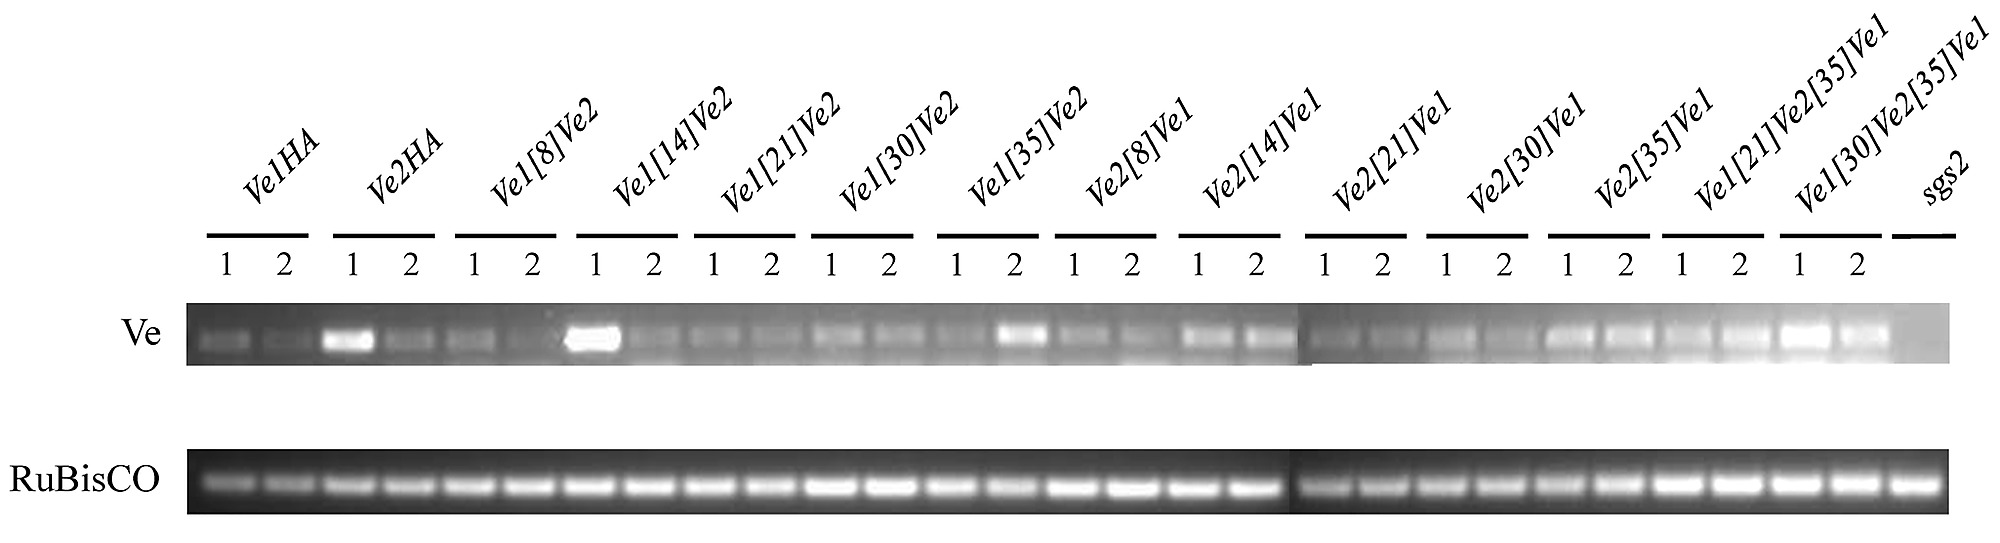 Functional Analysis Of The Tomato Immune Receptor Ve1 Through Domain